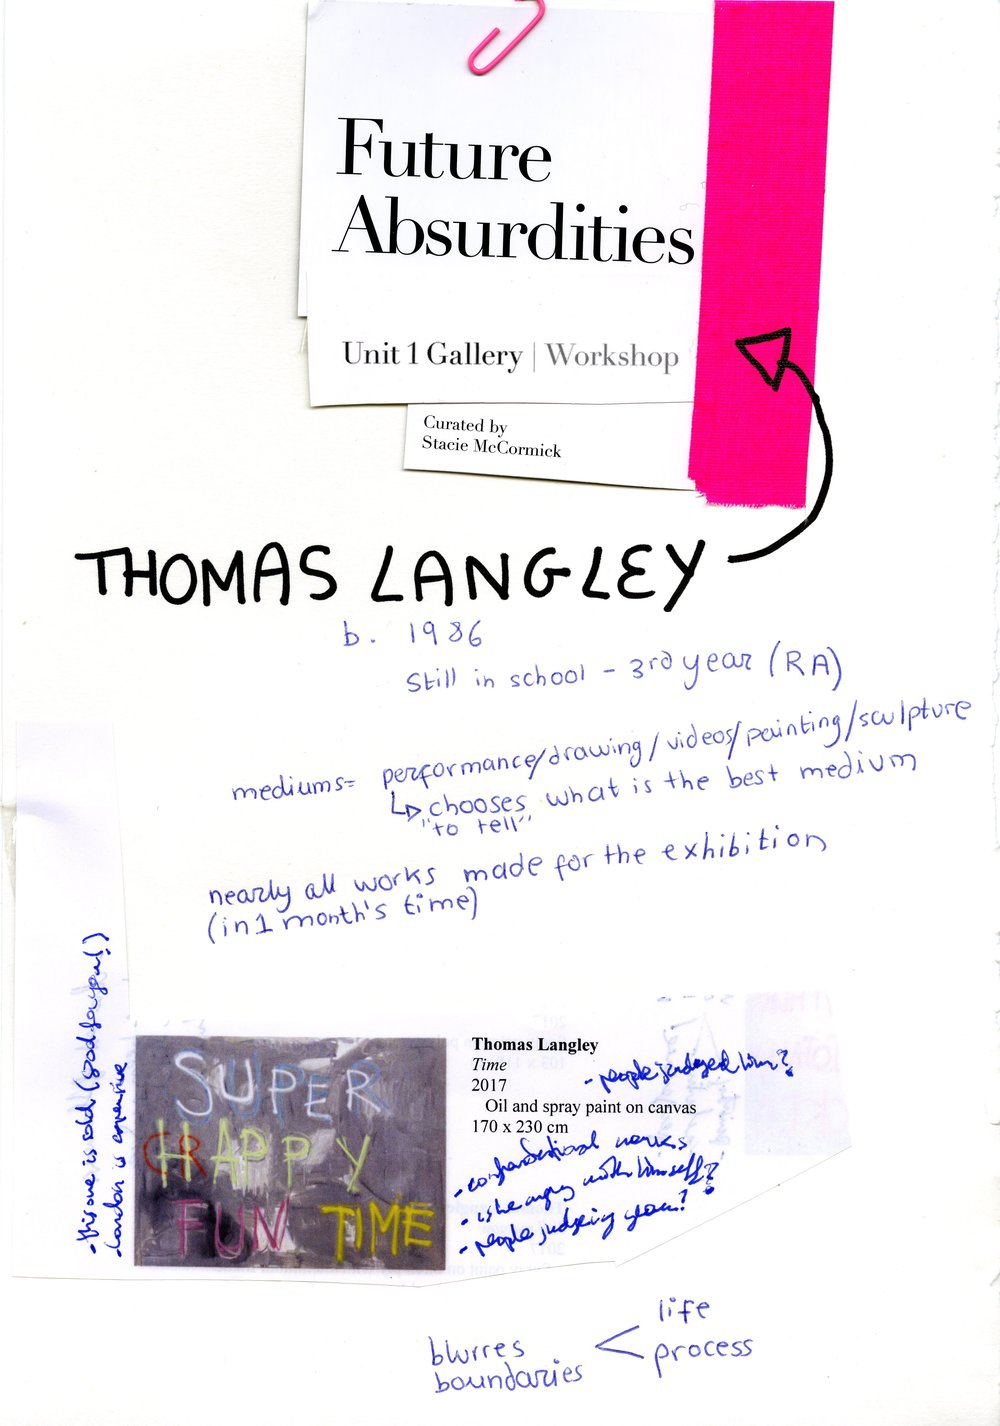 Thomas Langley, Future Absutdities, Unit 1 Gallery Workshop_001.jpg